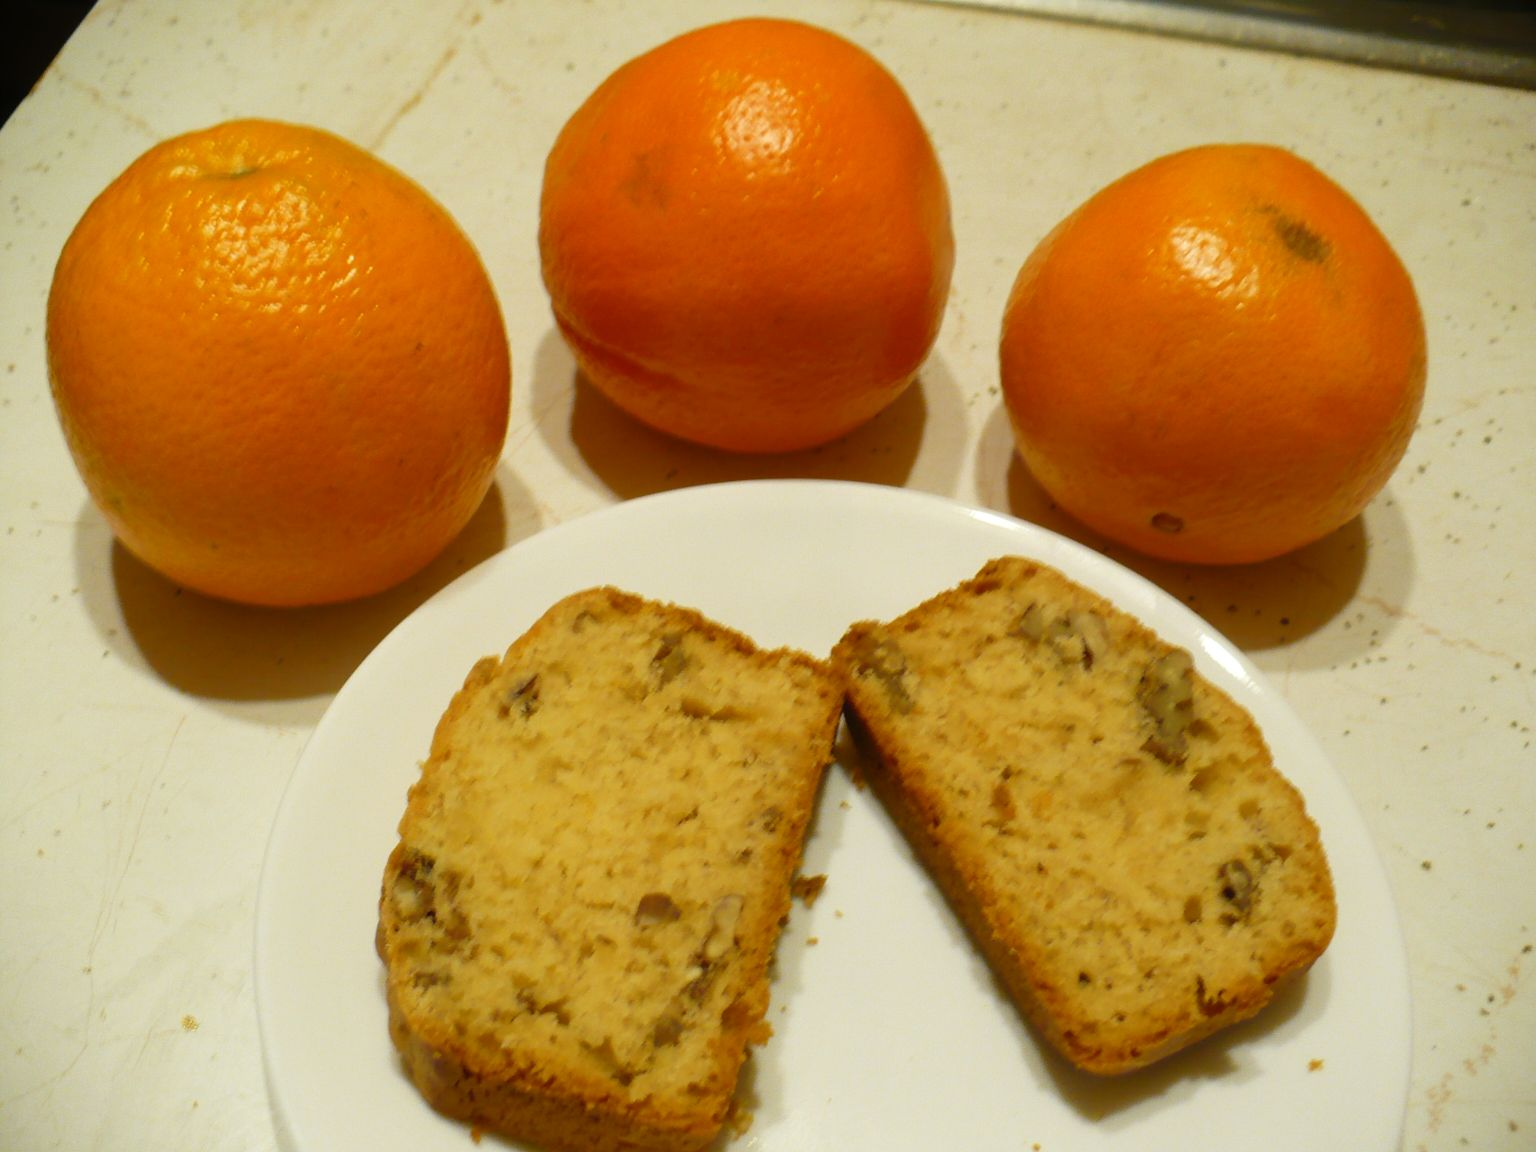 My Homemade Iowa Life: Iowa recipe: Orange Honey Bread